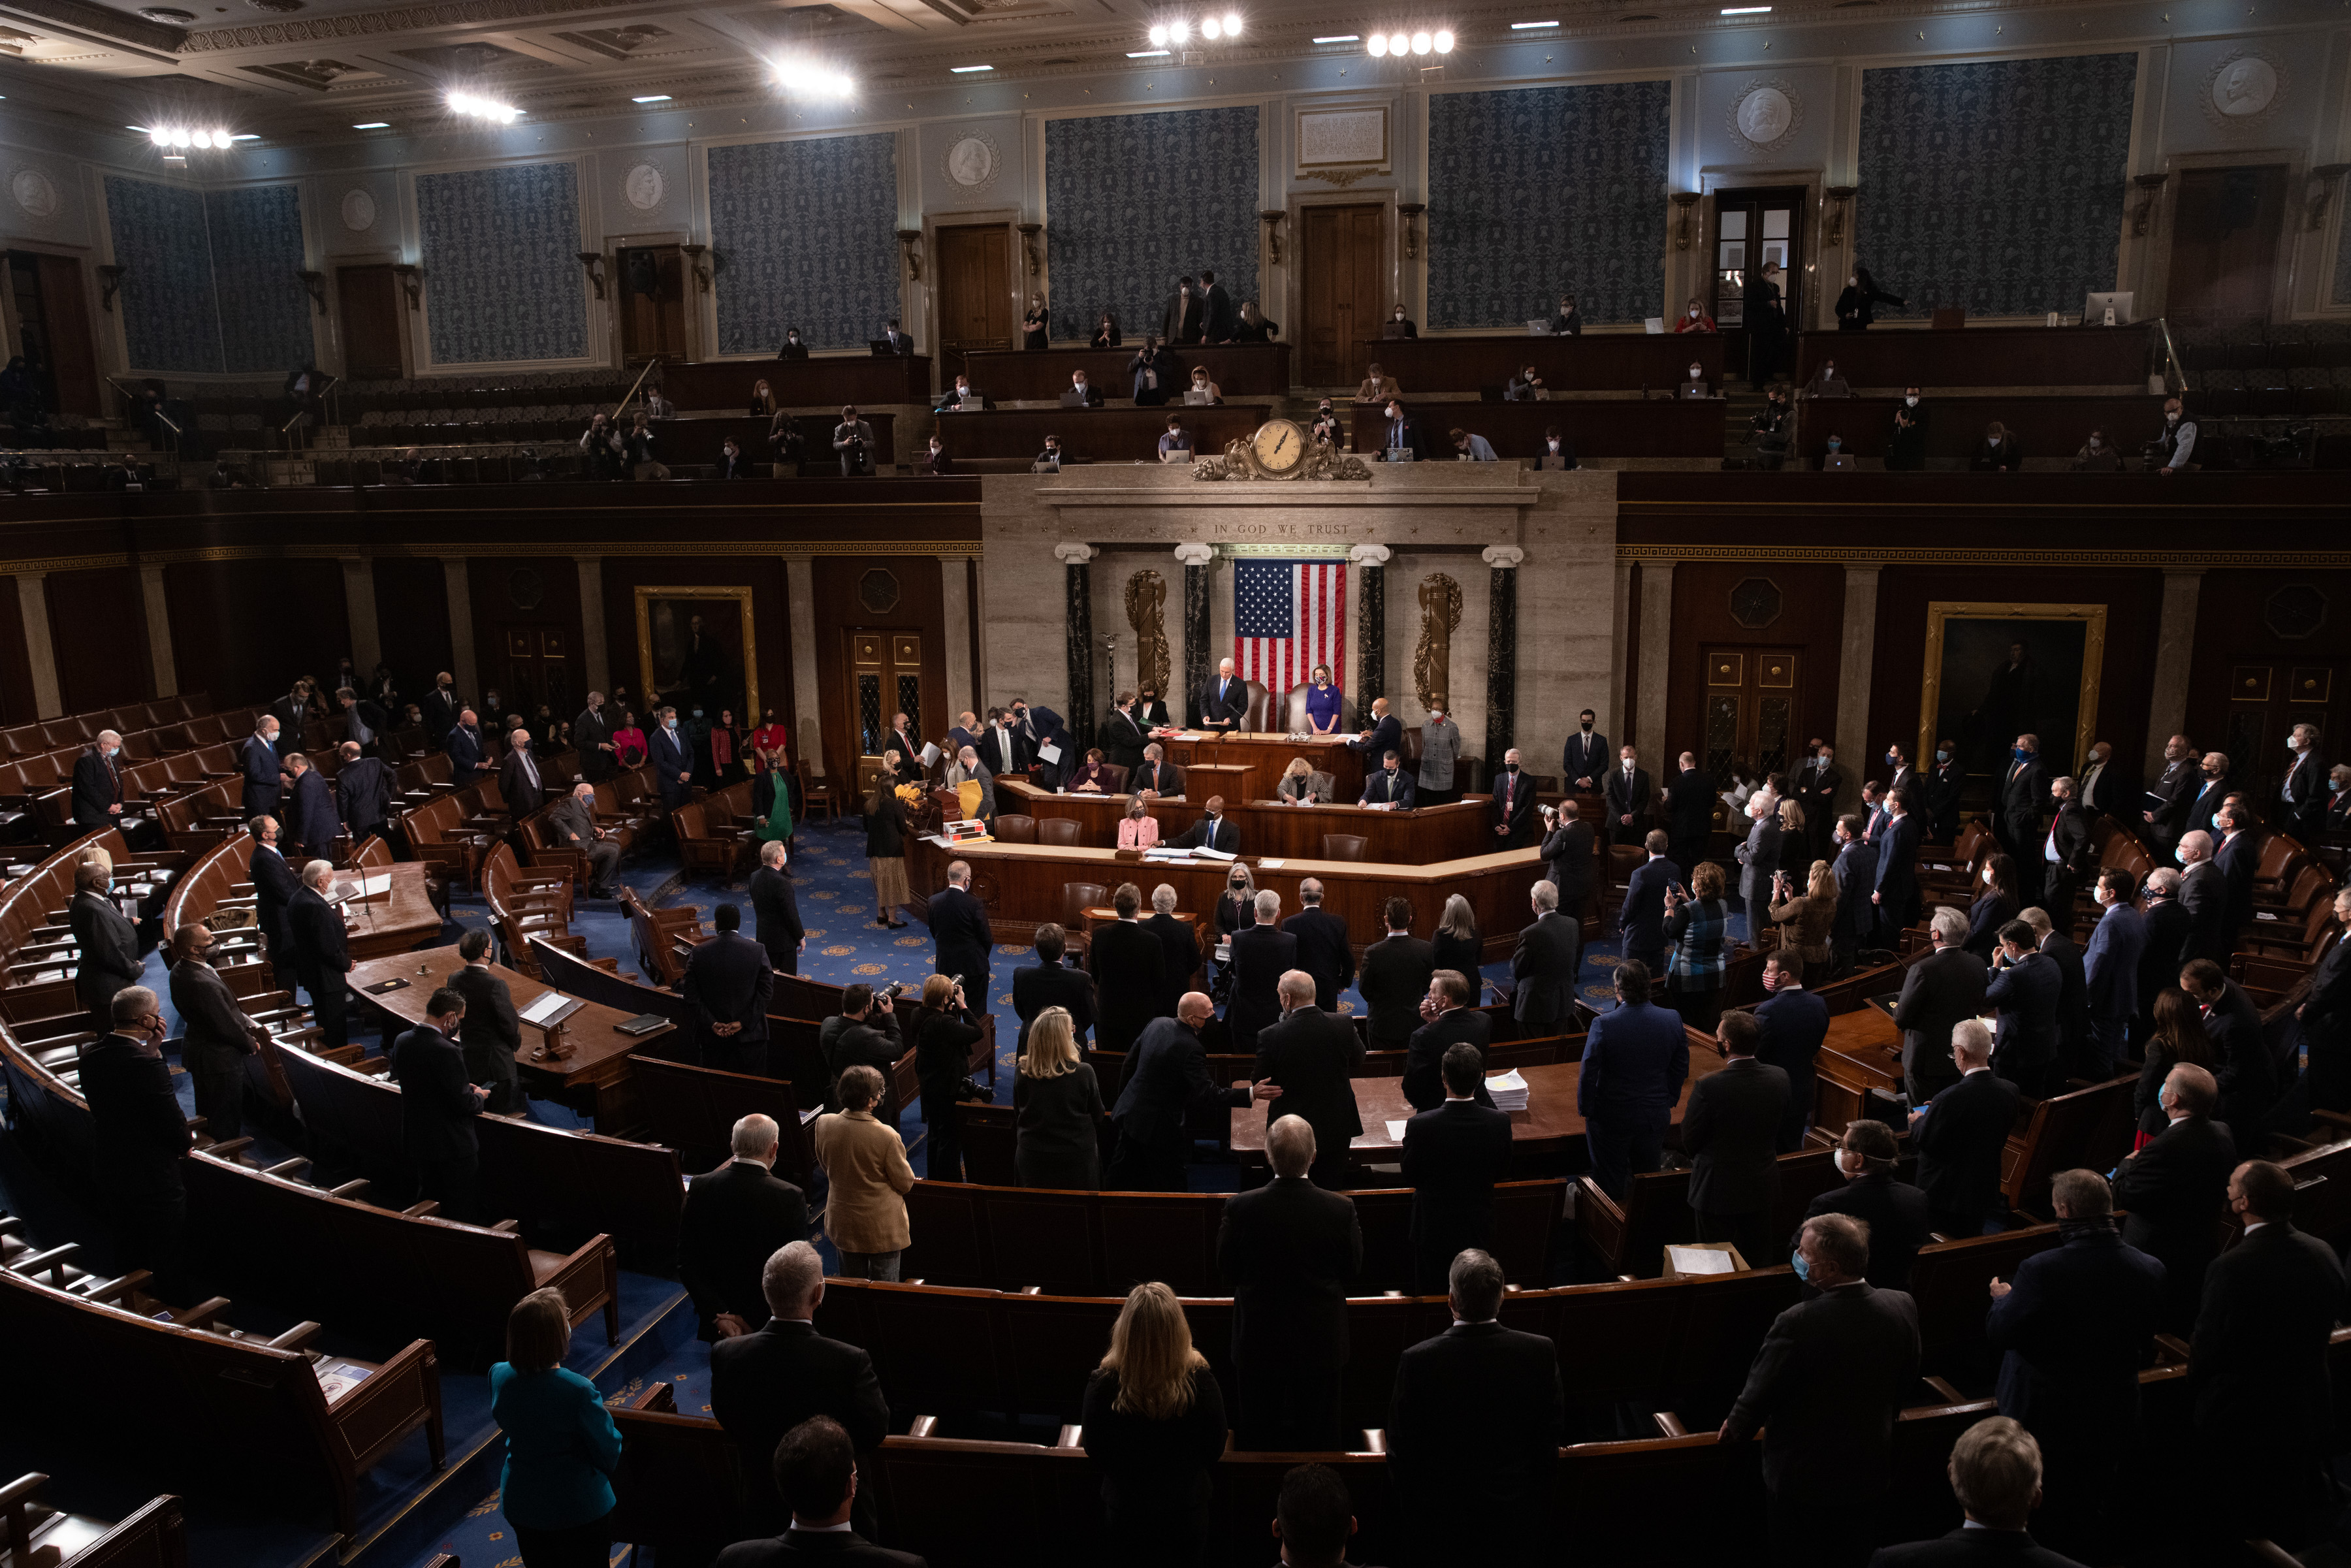 US Congress reconvenes hours after protesters breach Capitol